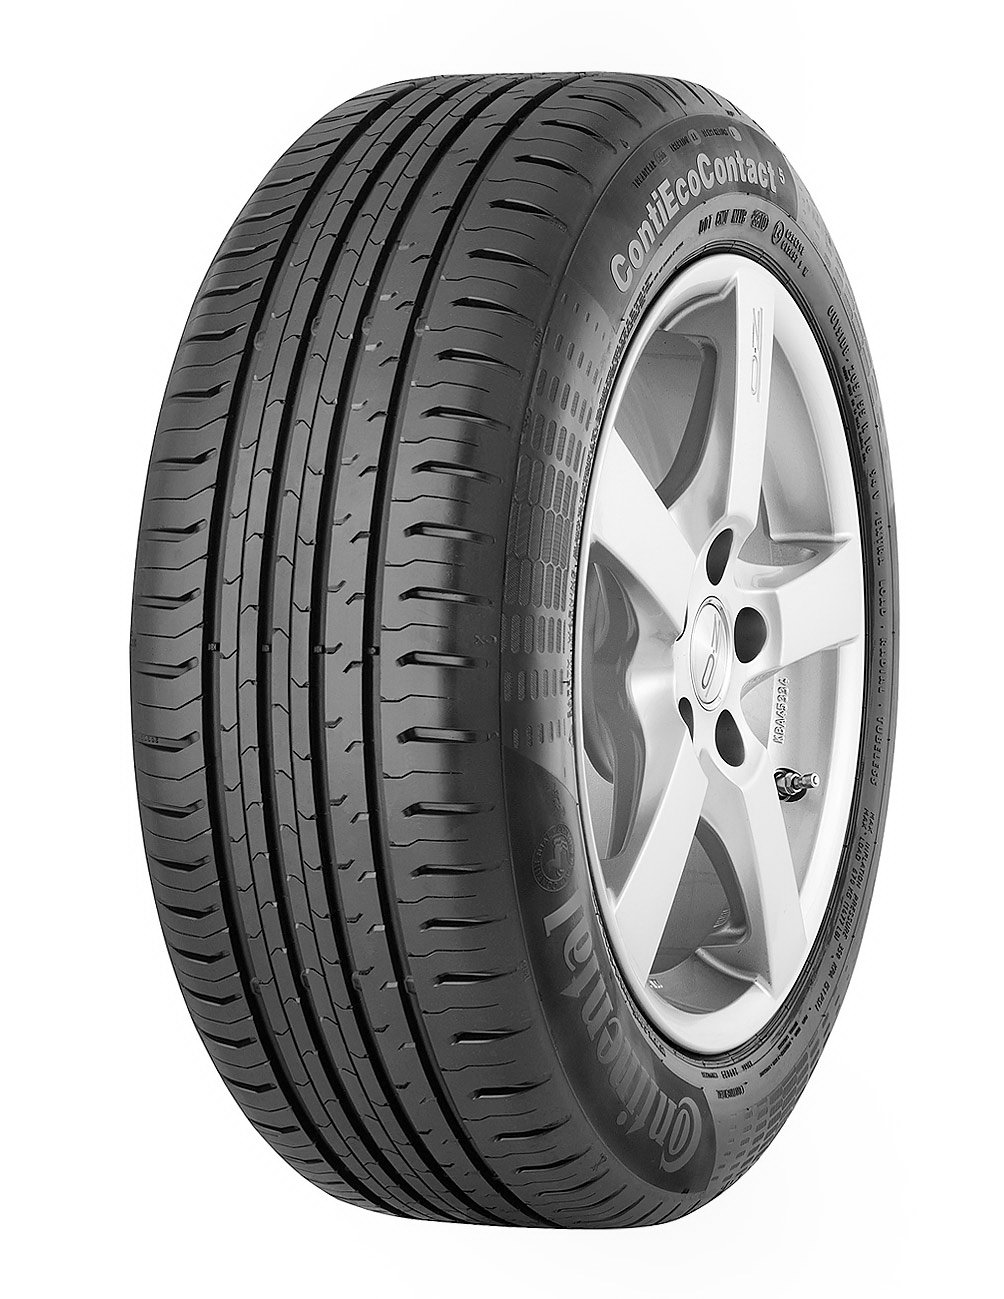 Anvelope vara CONTINENTAL ECO CONTACT 5 175/65 R14 86T